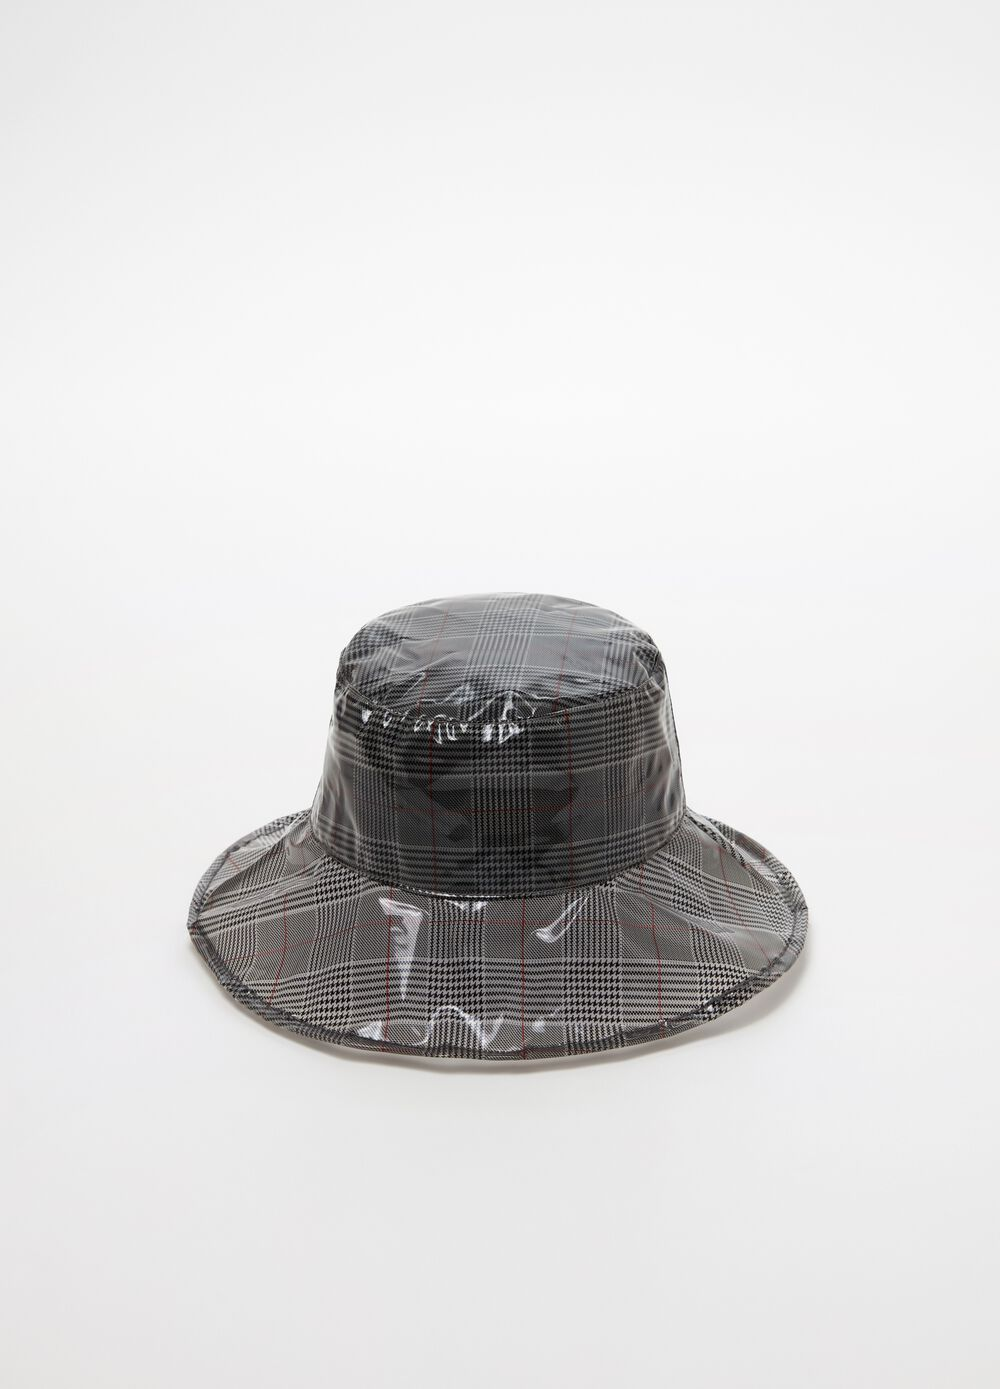 Rain hat with check pattern